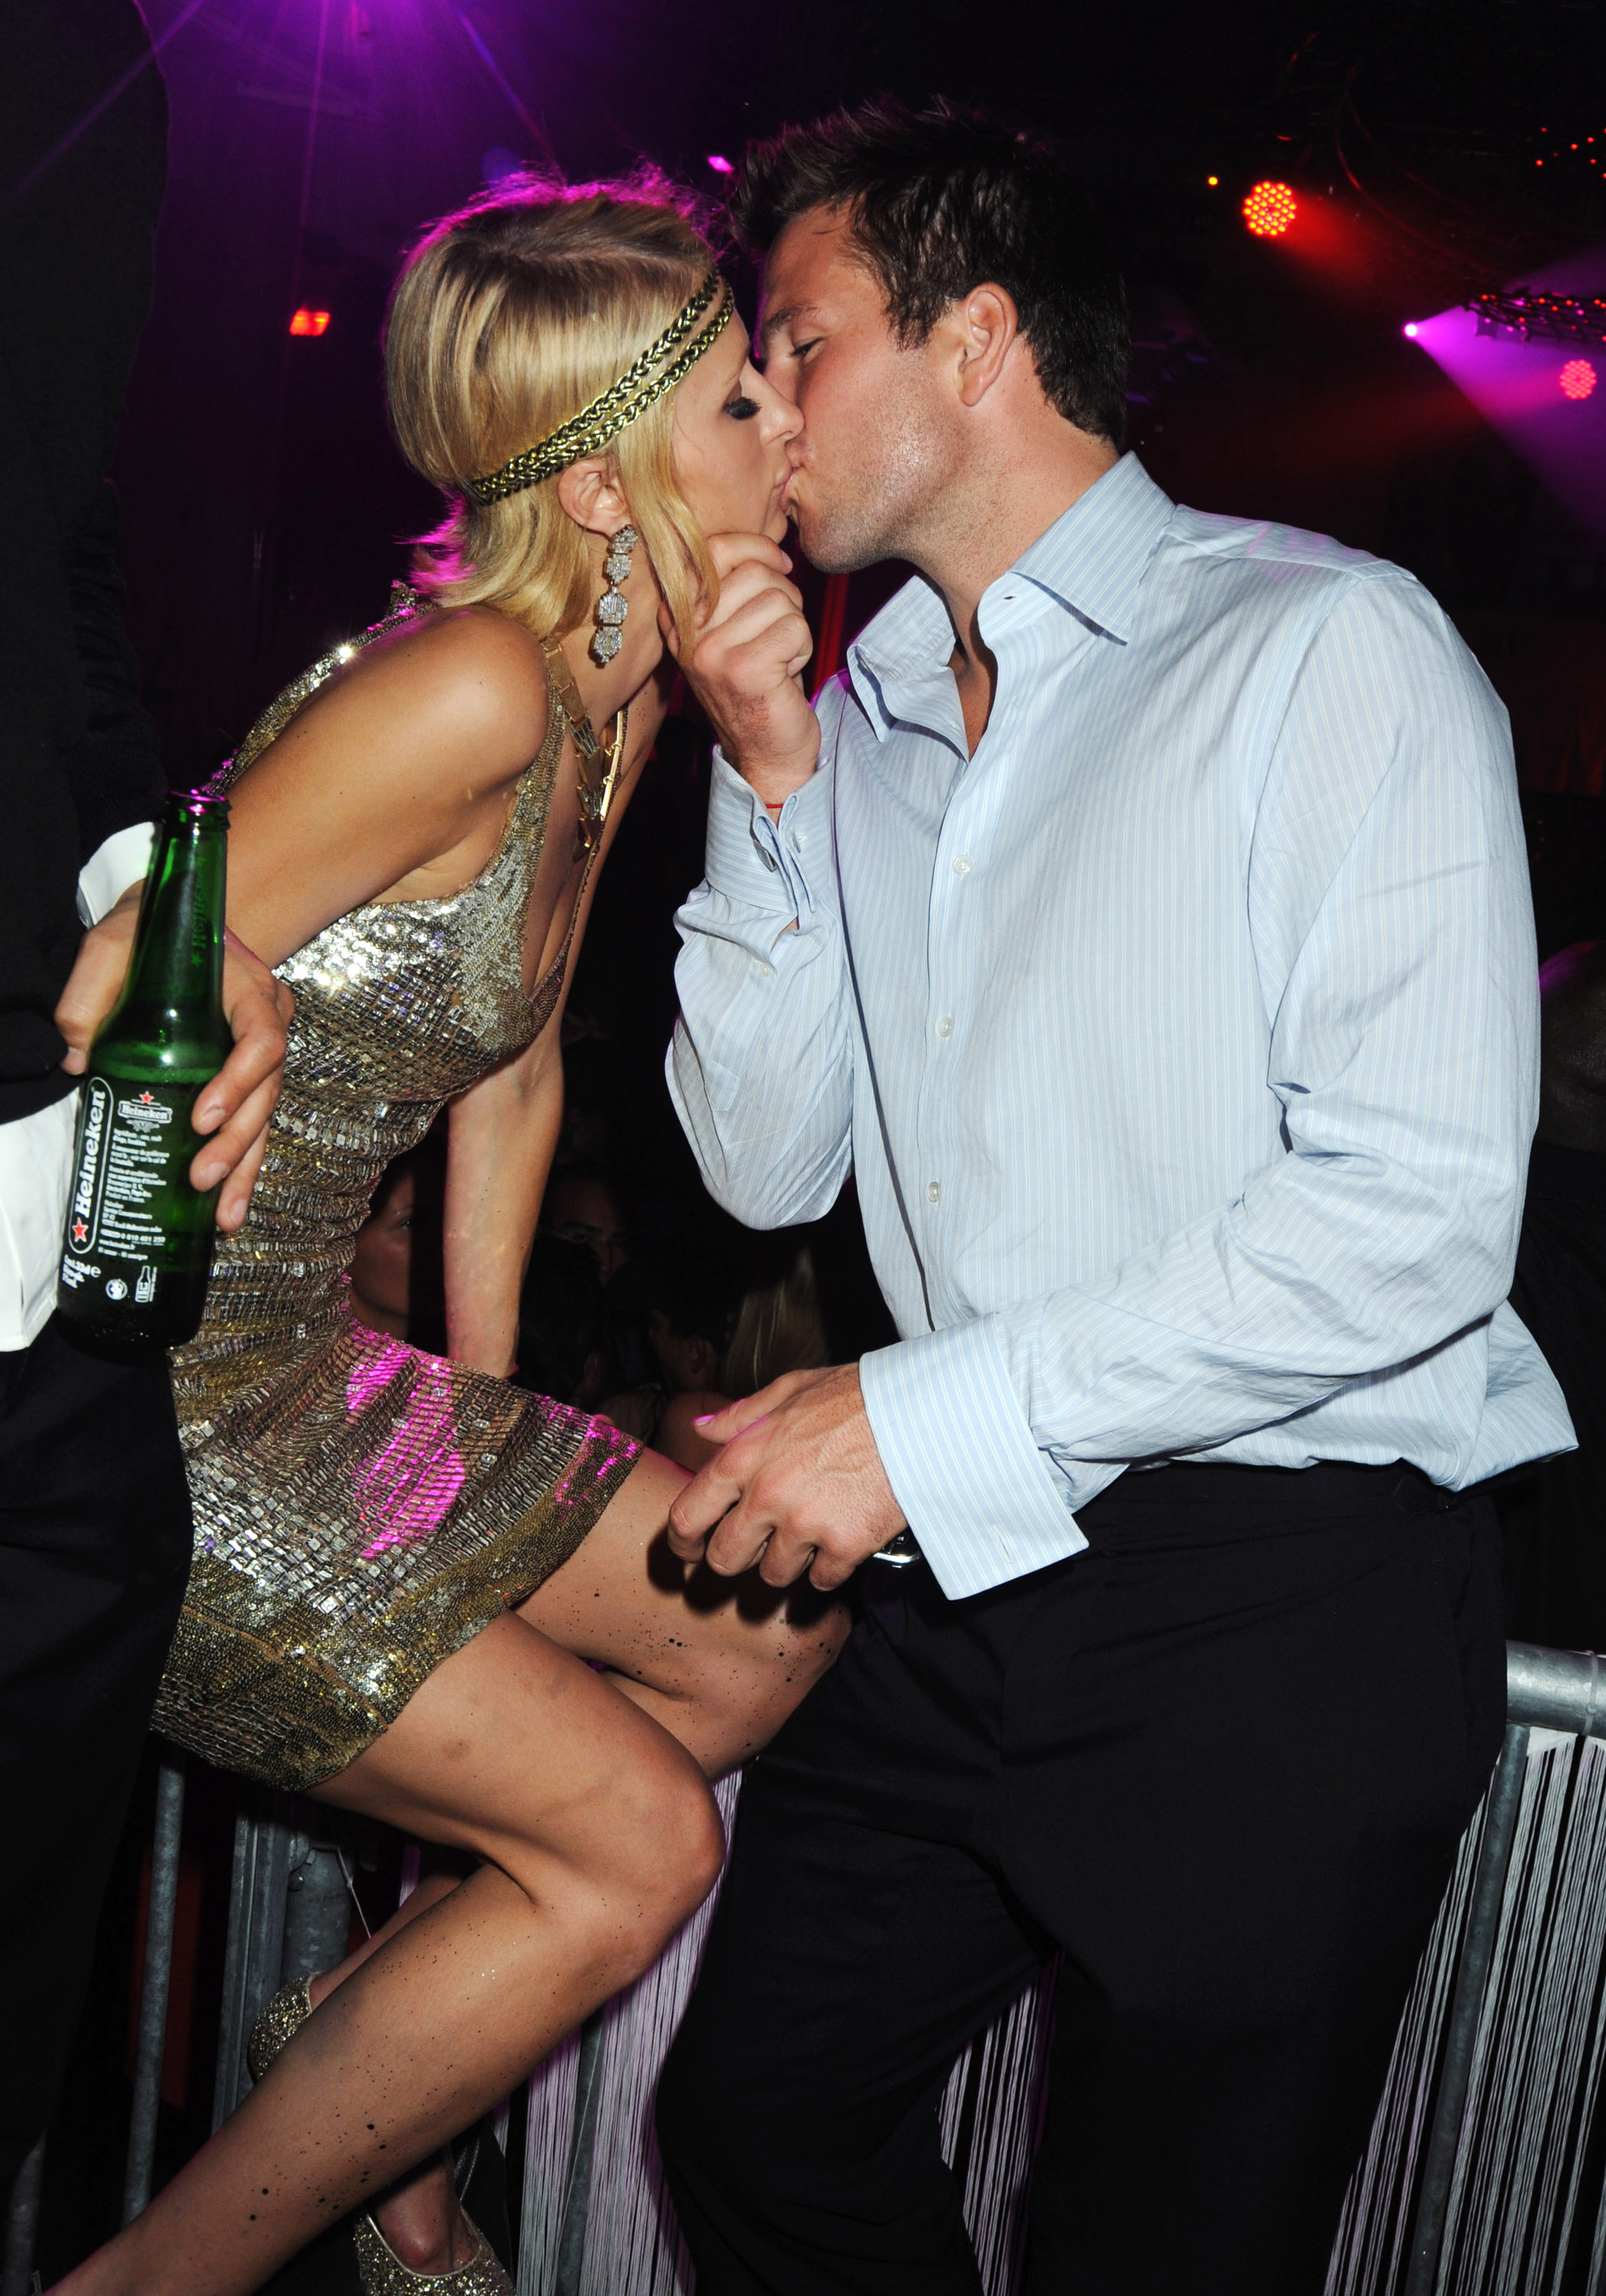 Paris Hilton hosts a night at the Jalouse Club